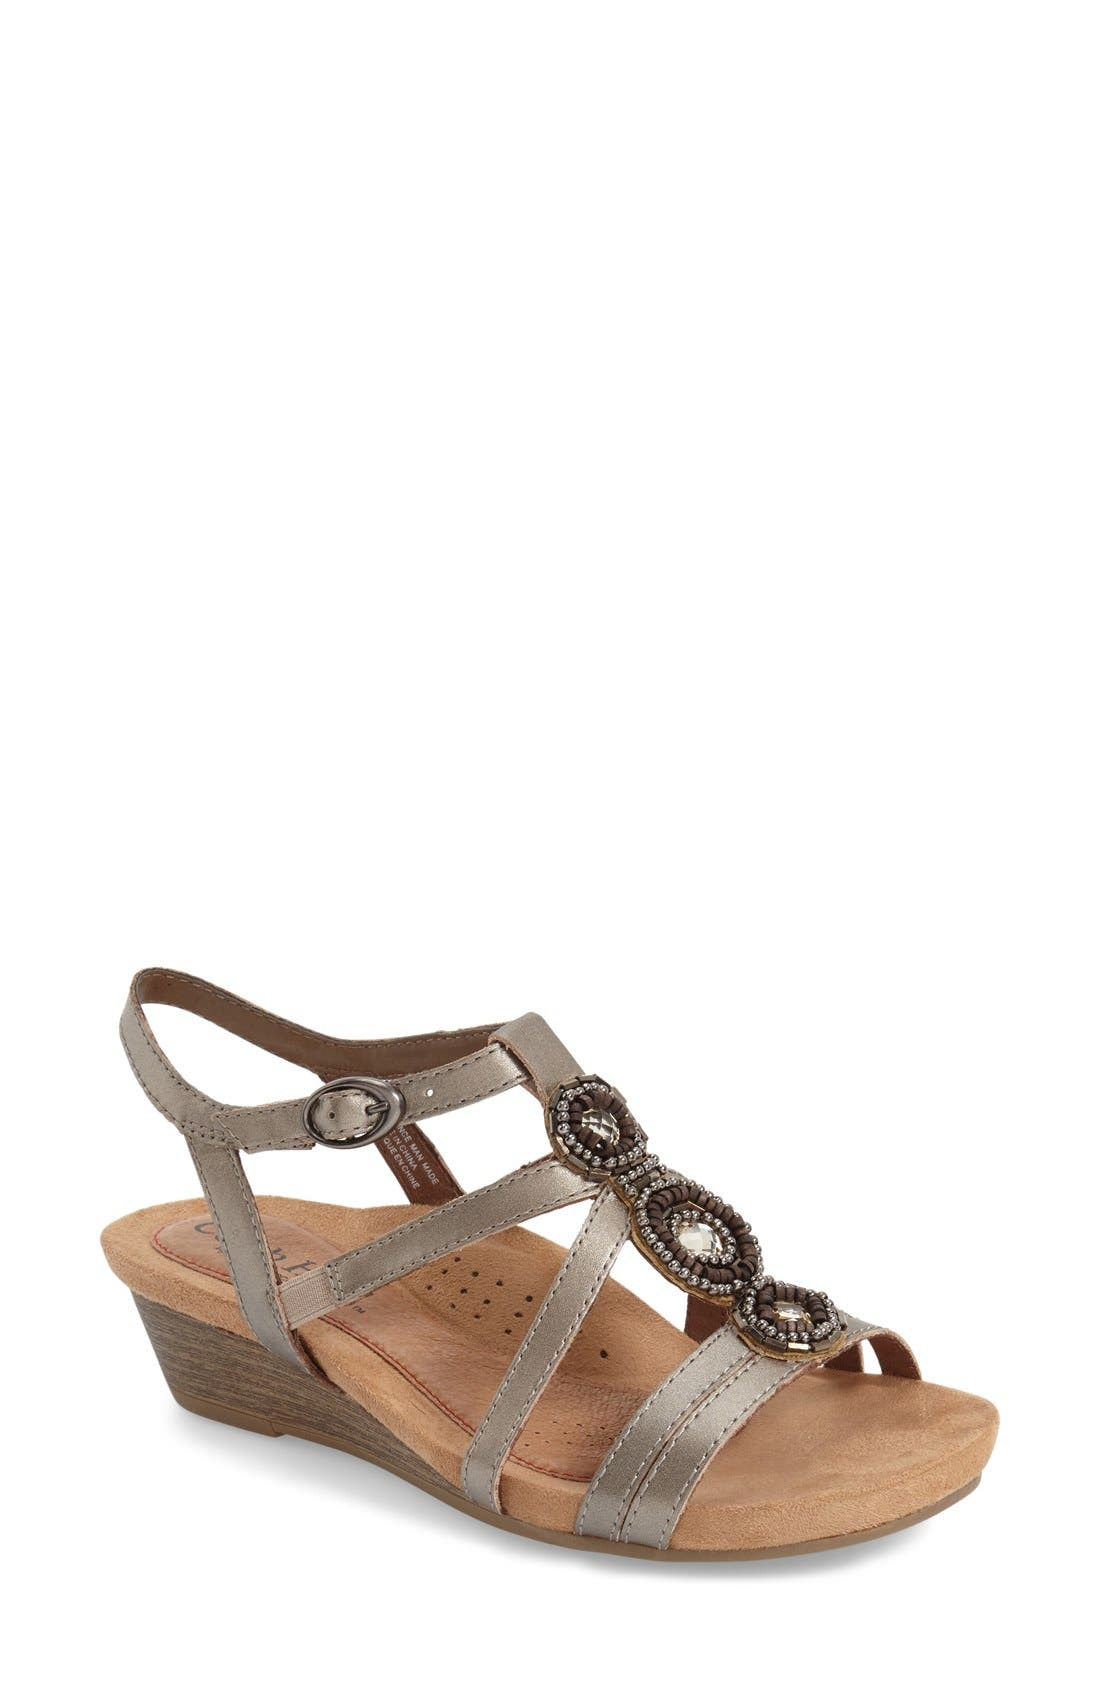 'Hannah' Leather Sandal,                         Main,                         color, PEWTER LEATHER